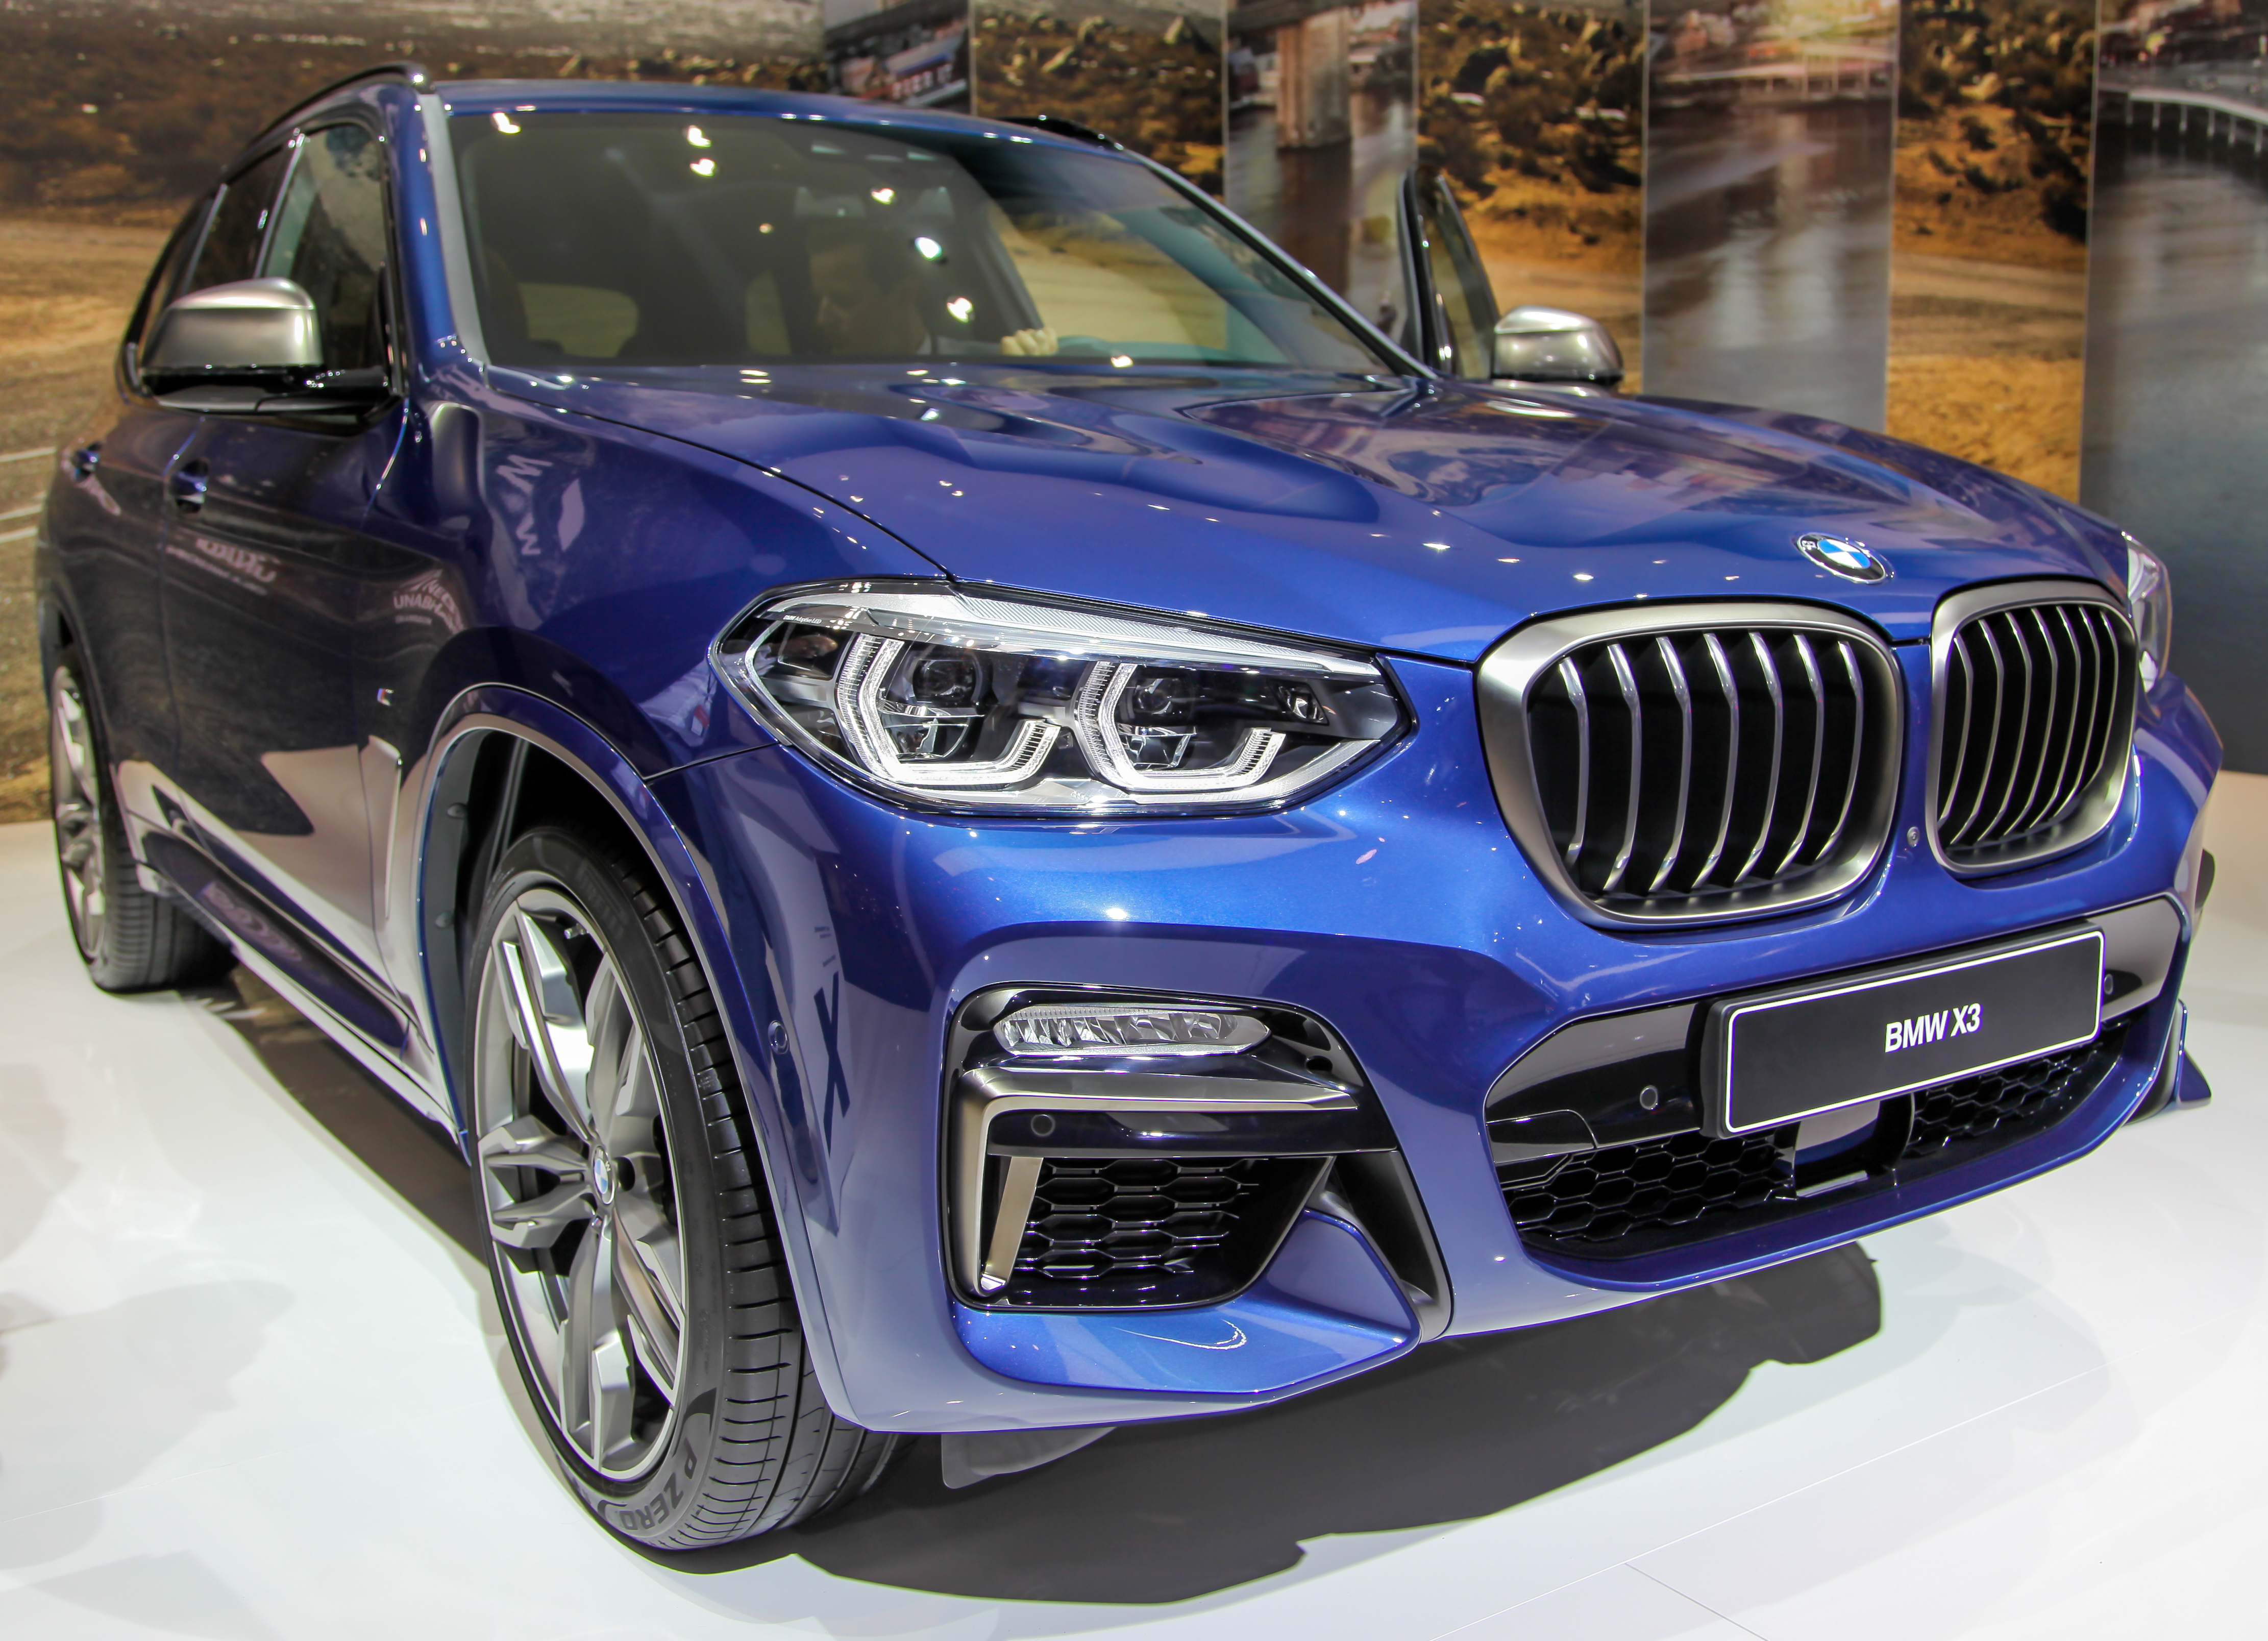 file bmw x3 m40i img wikimedia commons. Black Bedroom Furniture Sets. Home Design Ideas